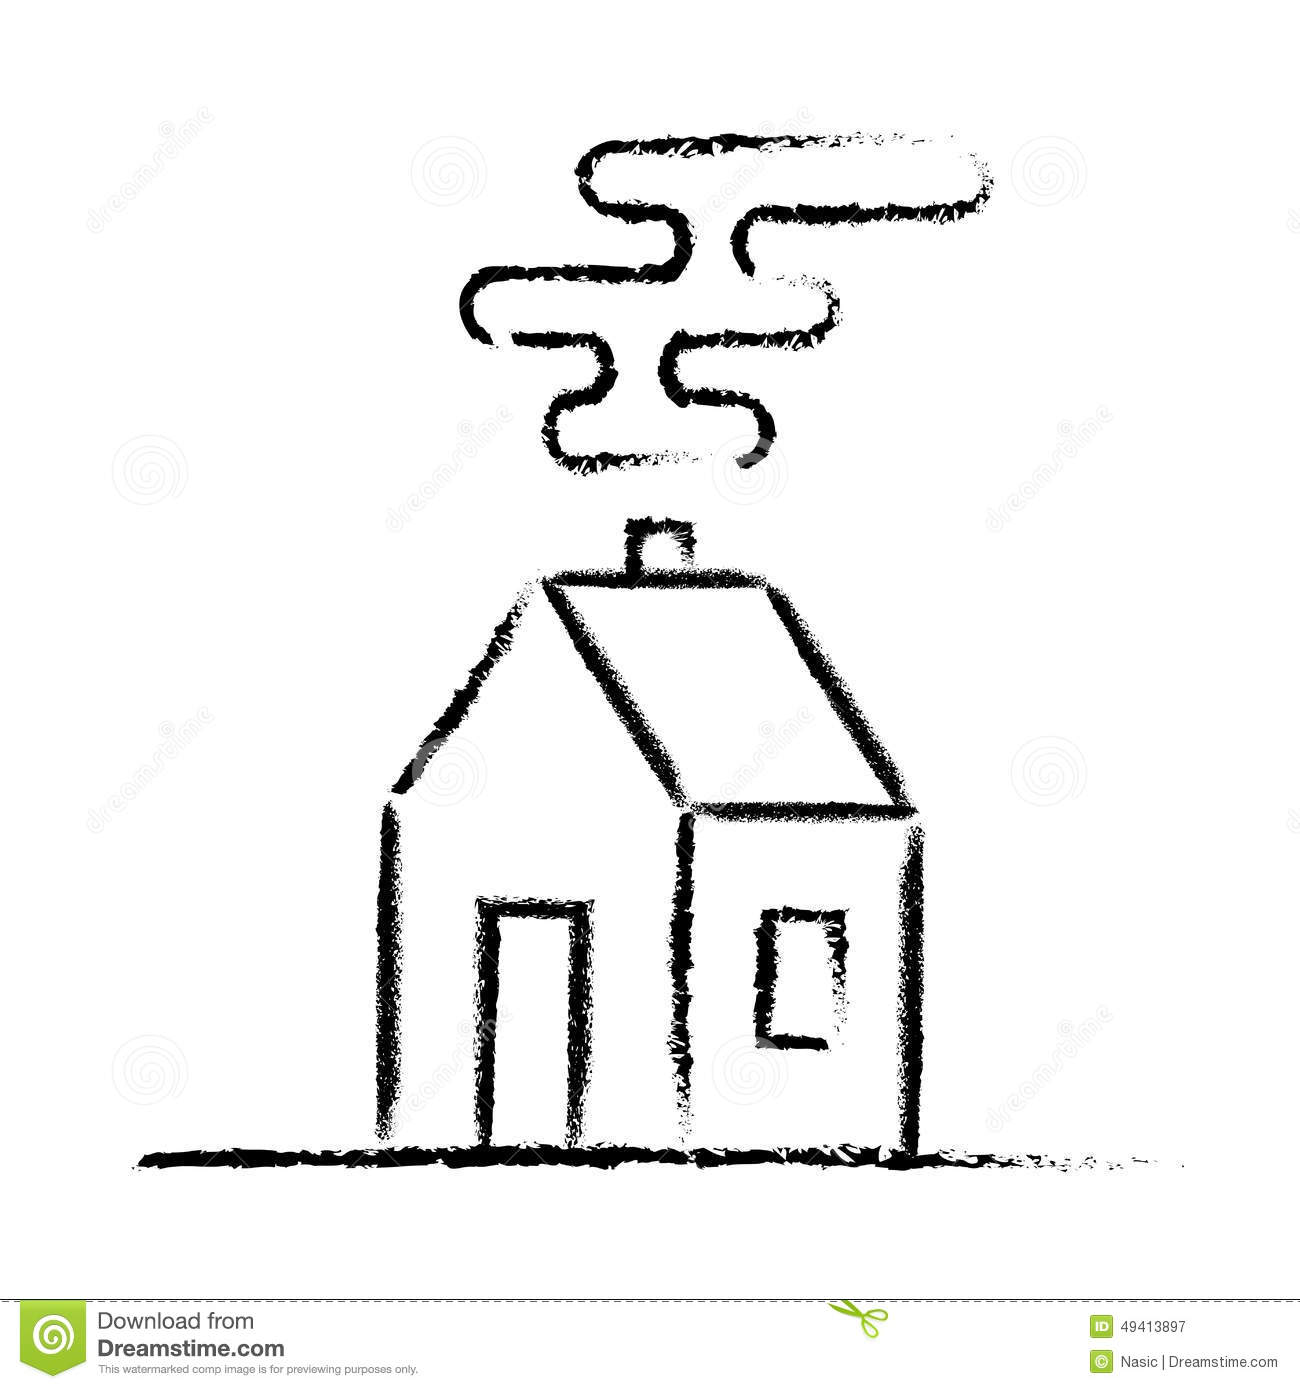 List also Houseplan055D 0540 also Stock Illustration Black Crayon House Sketch Drawing White Background Image49413897 further One level houses plans furthermore 654049 One story 3 bedroom  2 bath french traditional style house plan. on country house plans